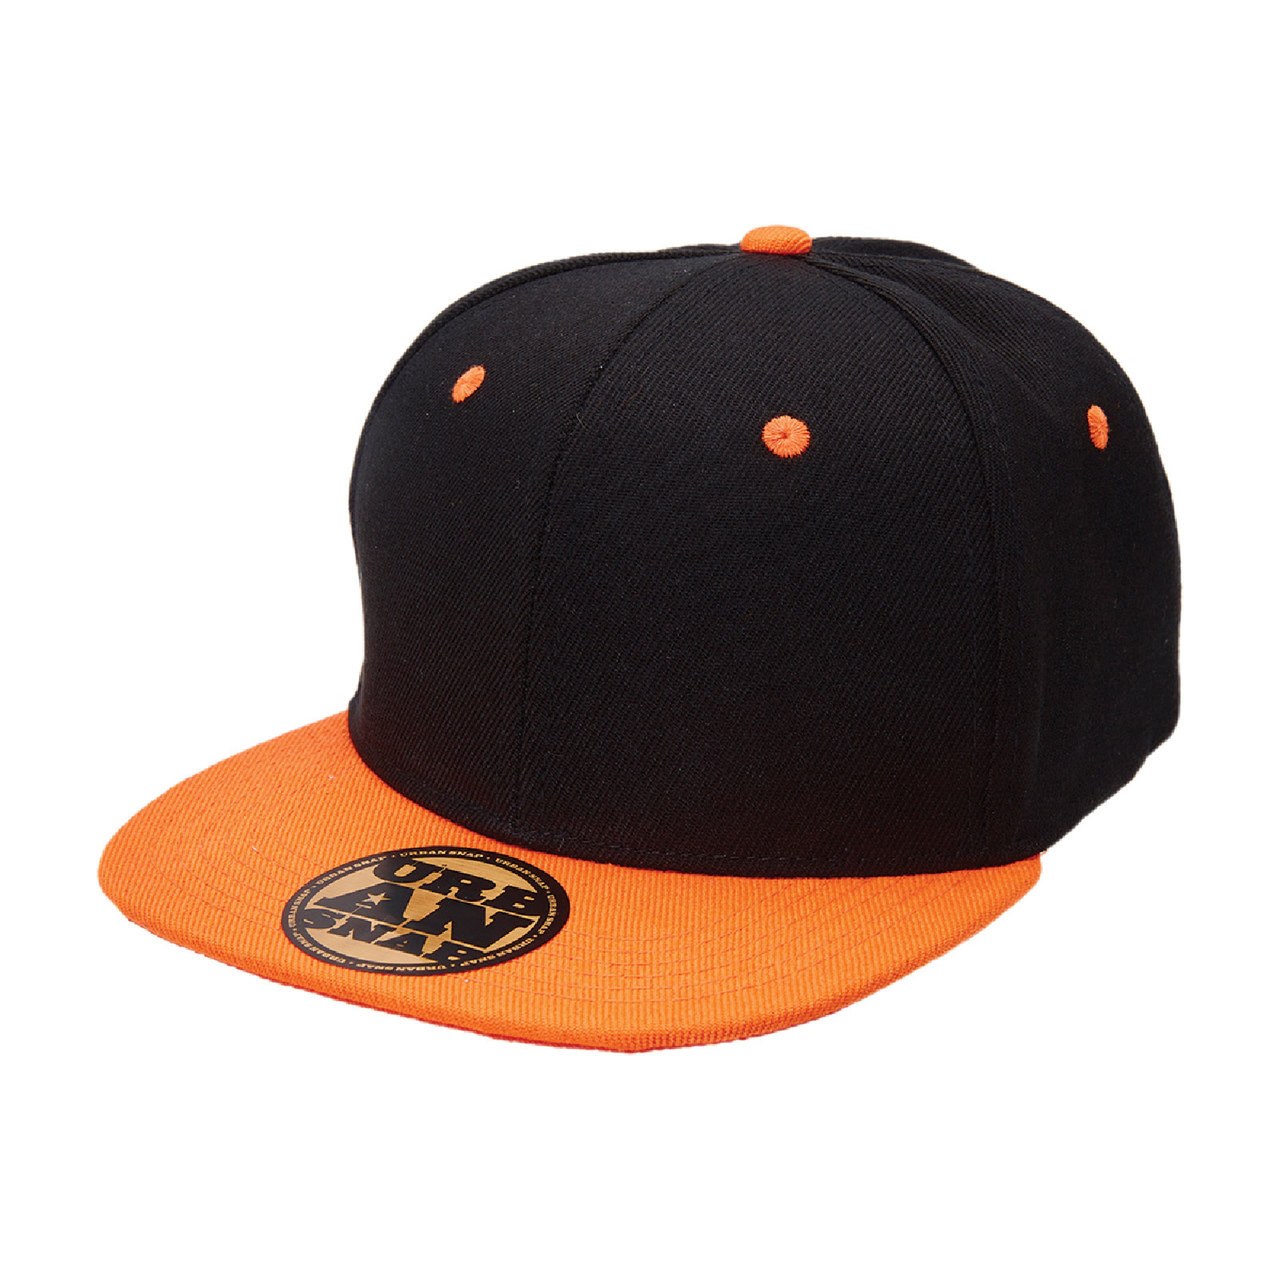 e0ce21602927b Buy Youth Kids Urban Snapback Wholesale Baseball Caps Online